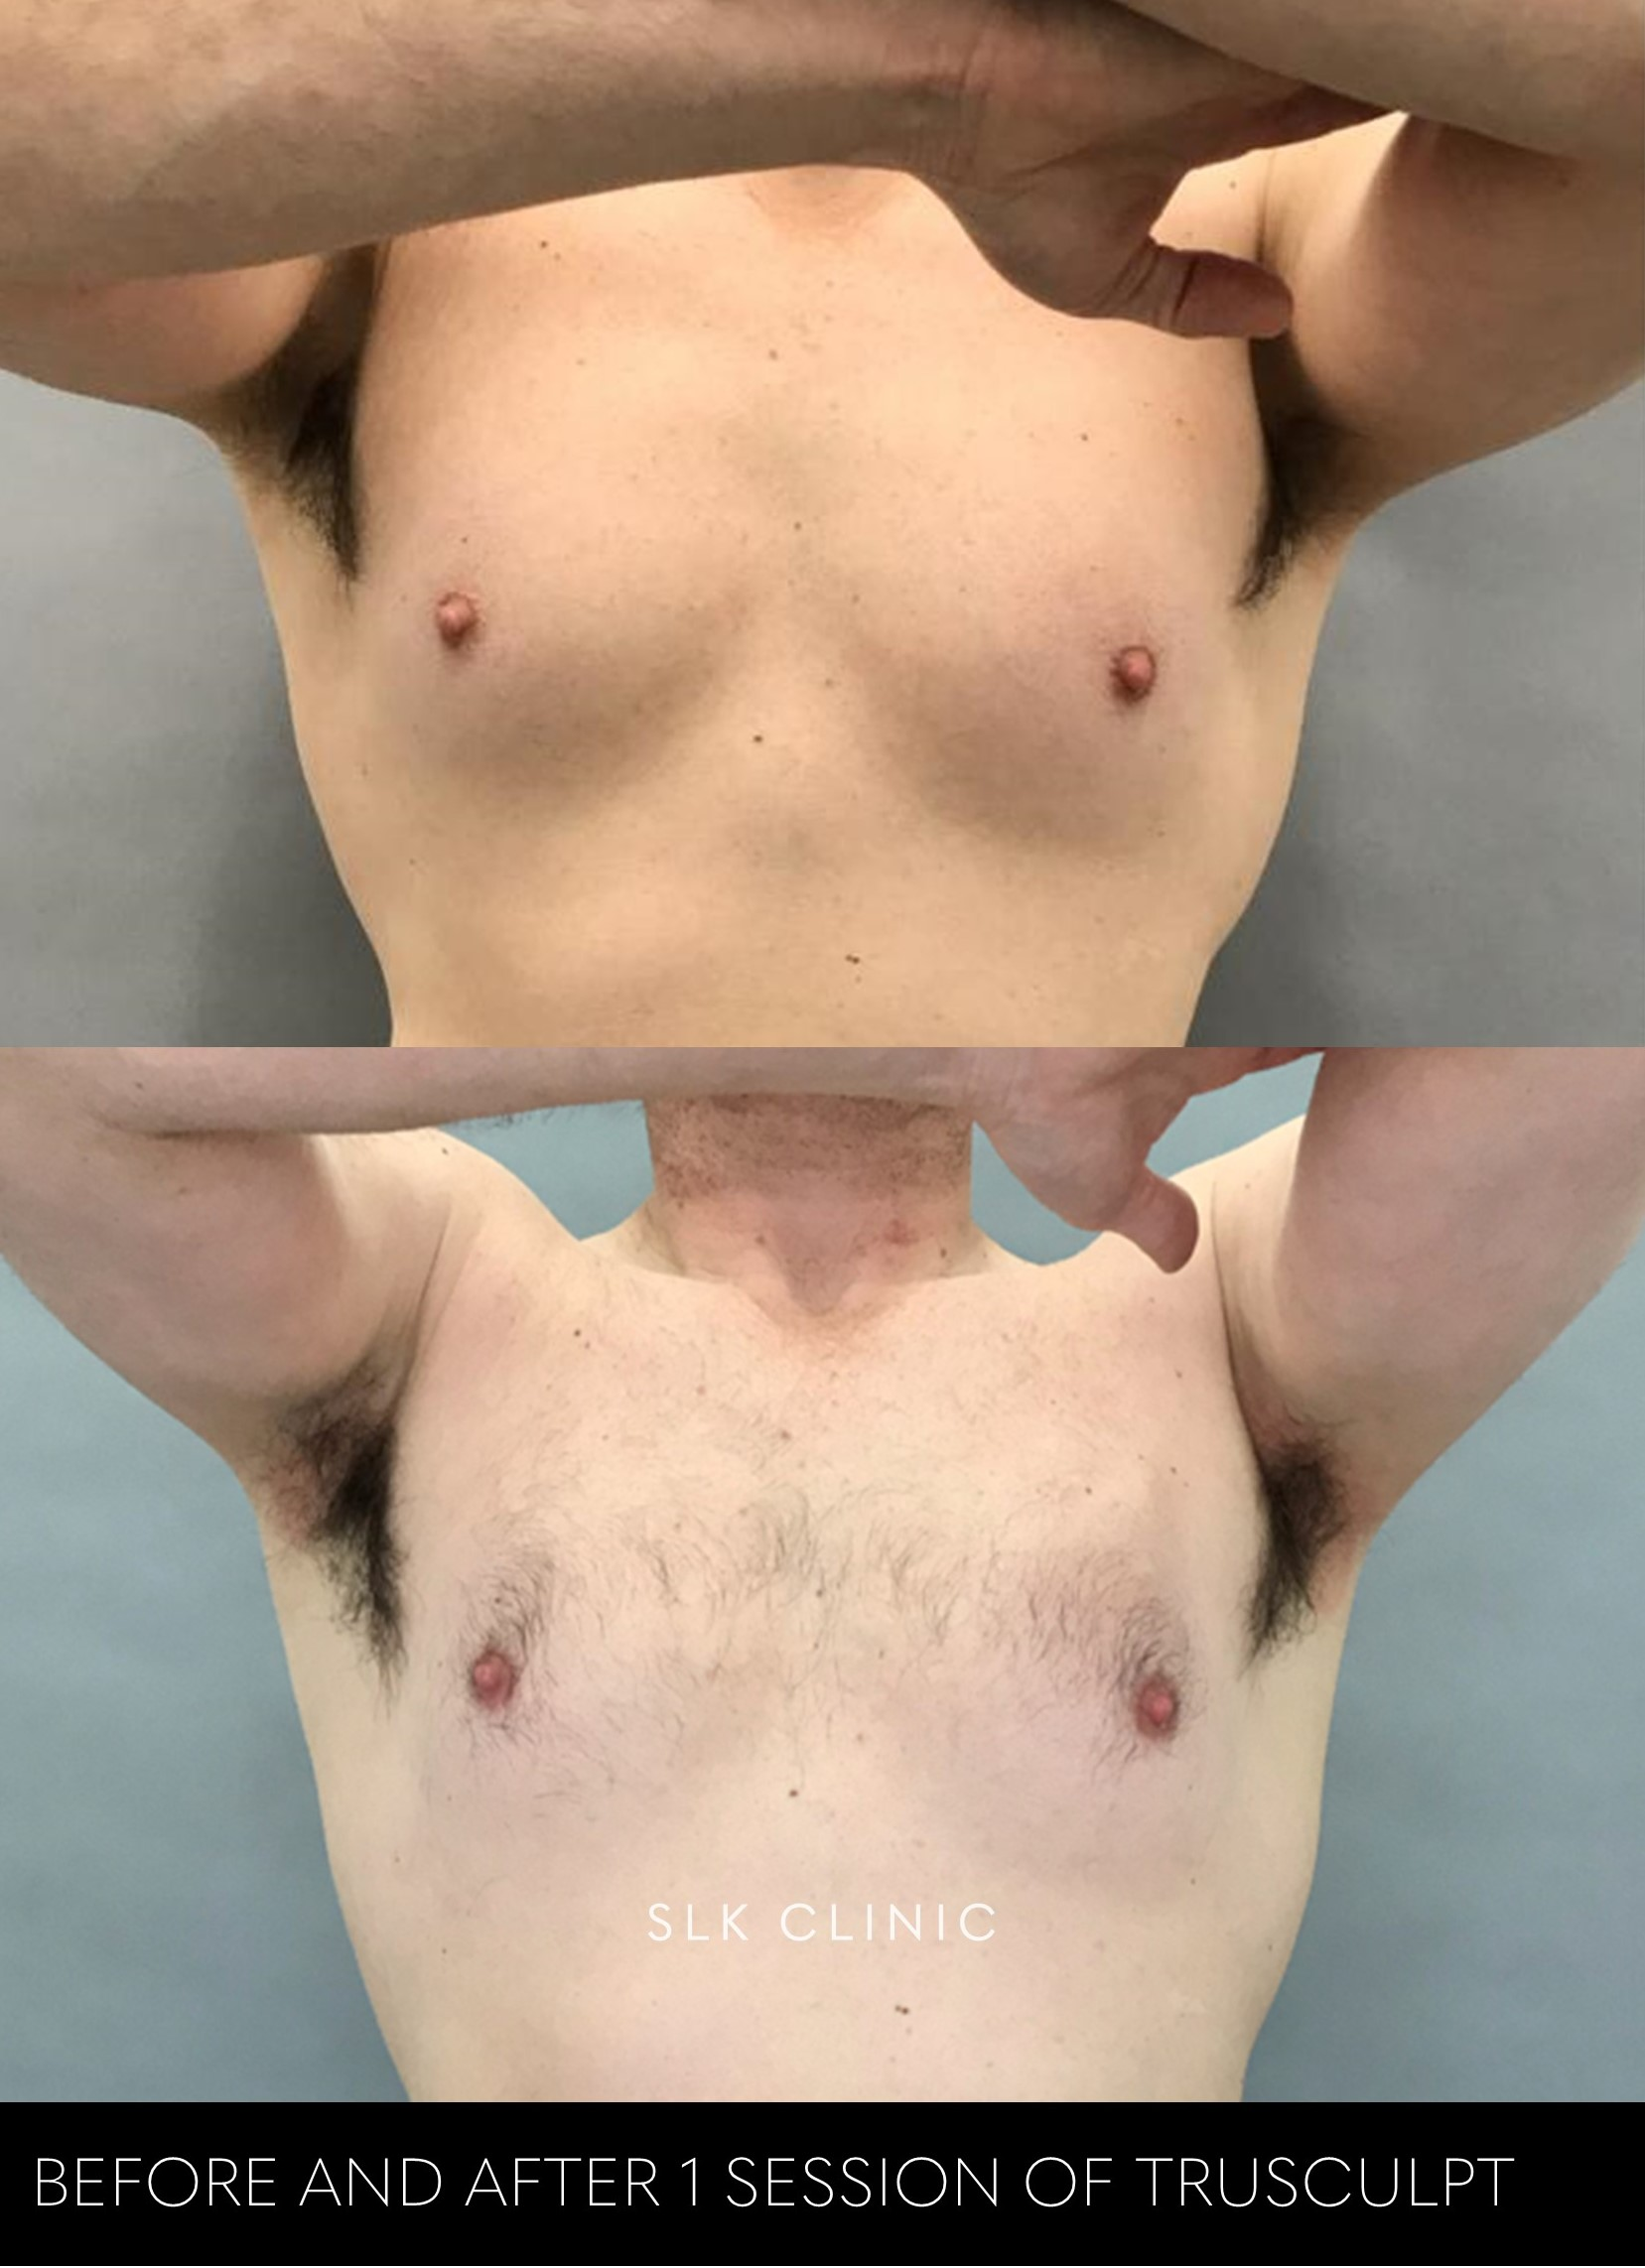 male chest before and after trusculpt July 2019